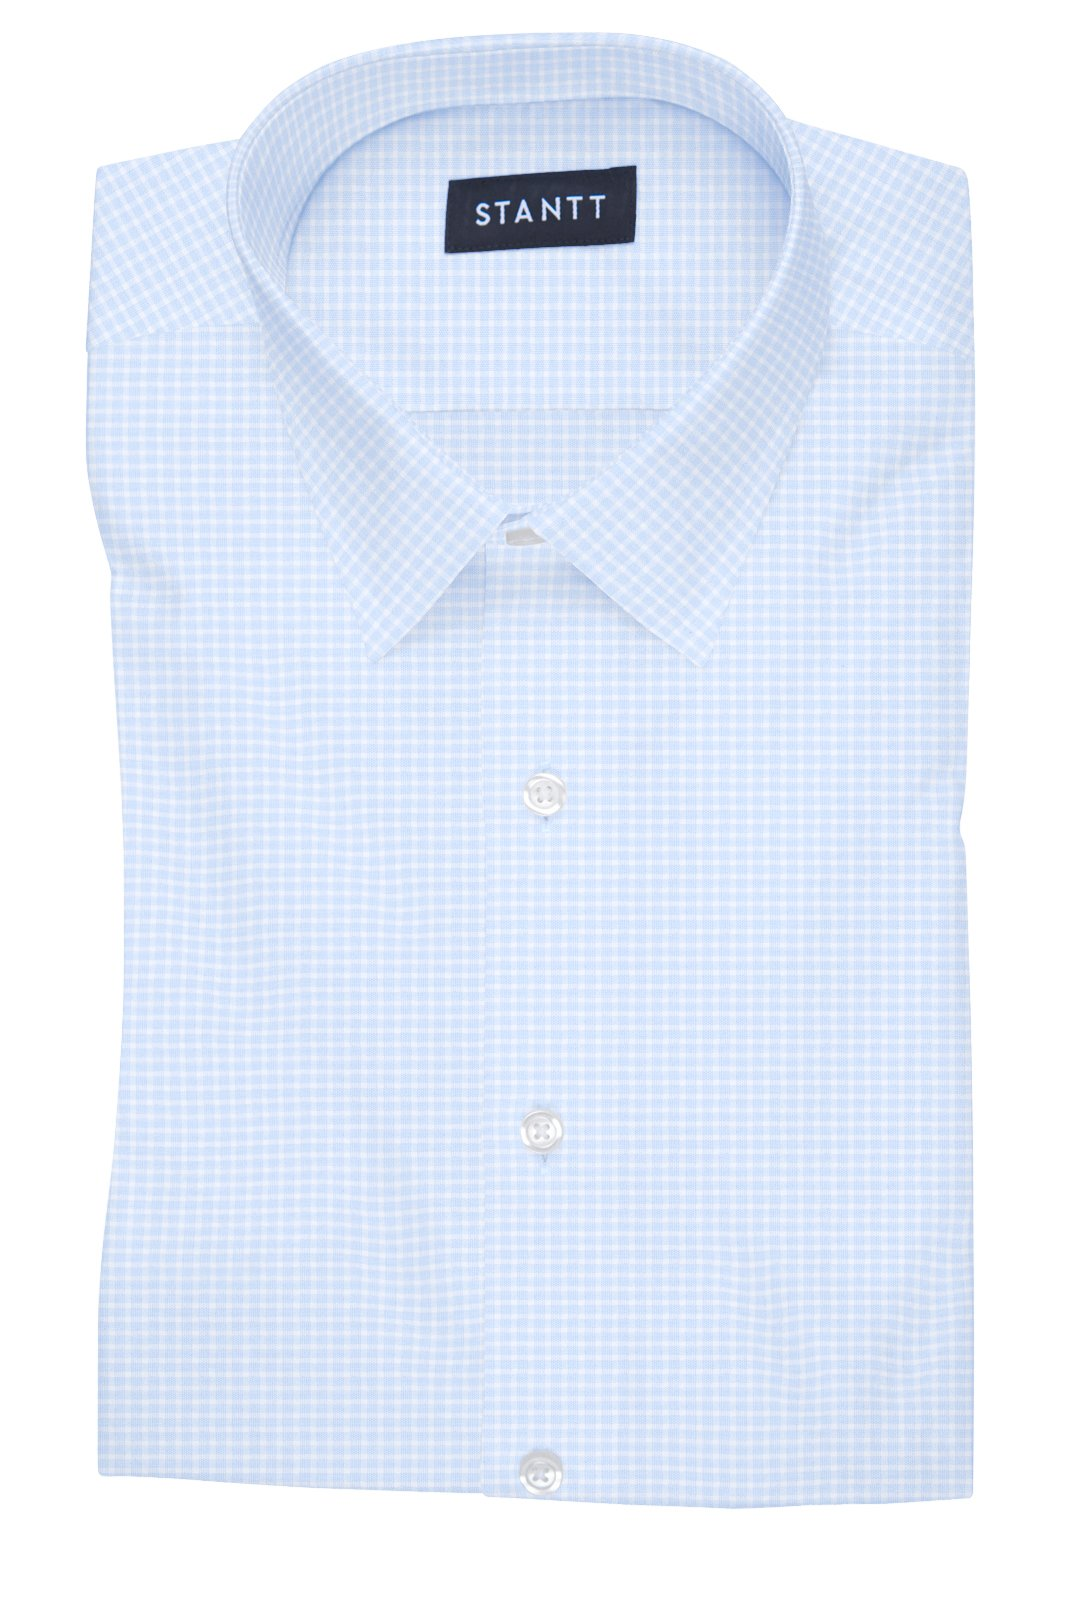 Powder Blue Grid Check: Semi-Spread Collar, Barrel Cuff